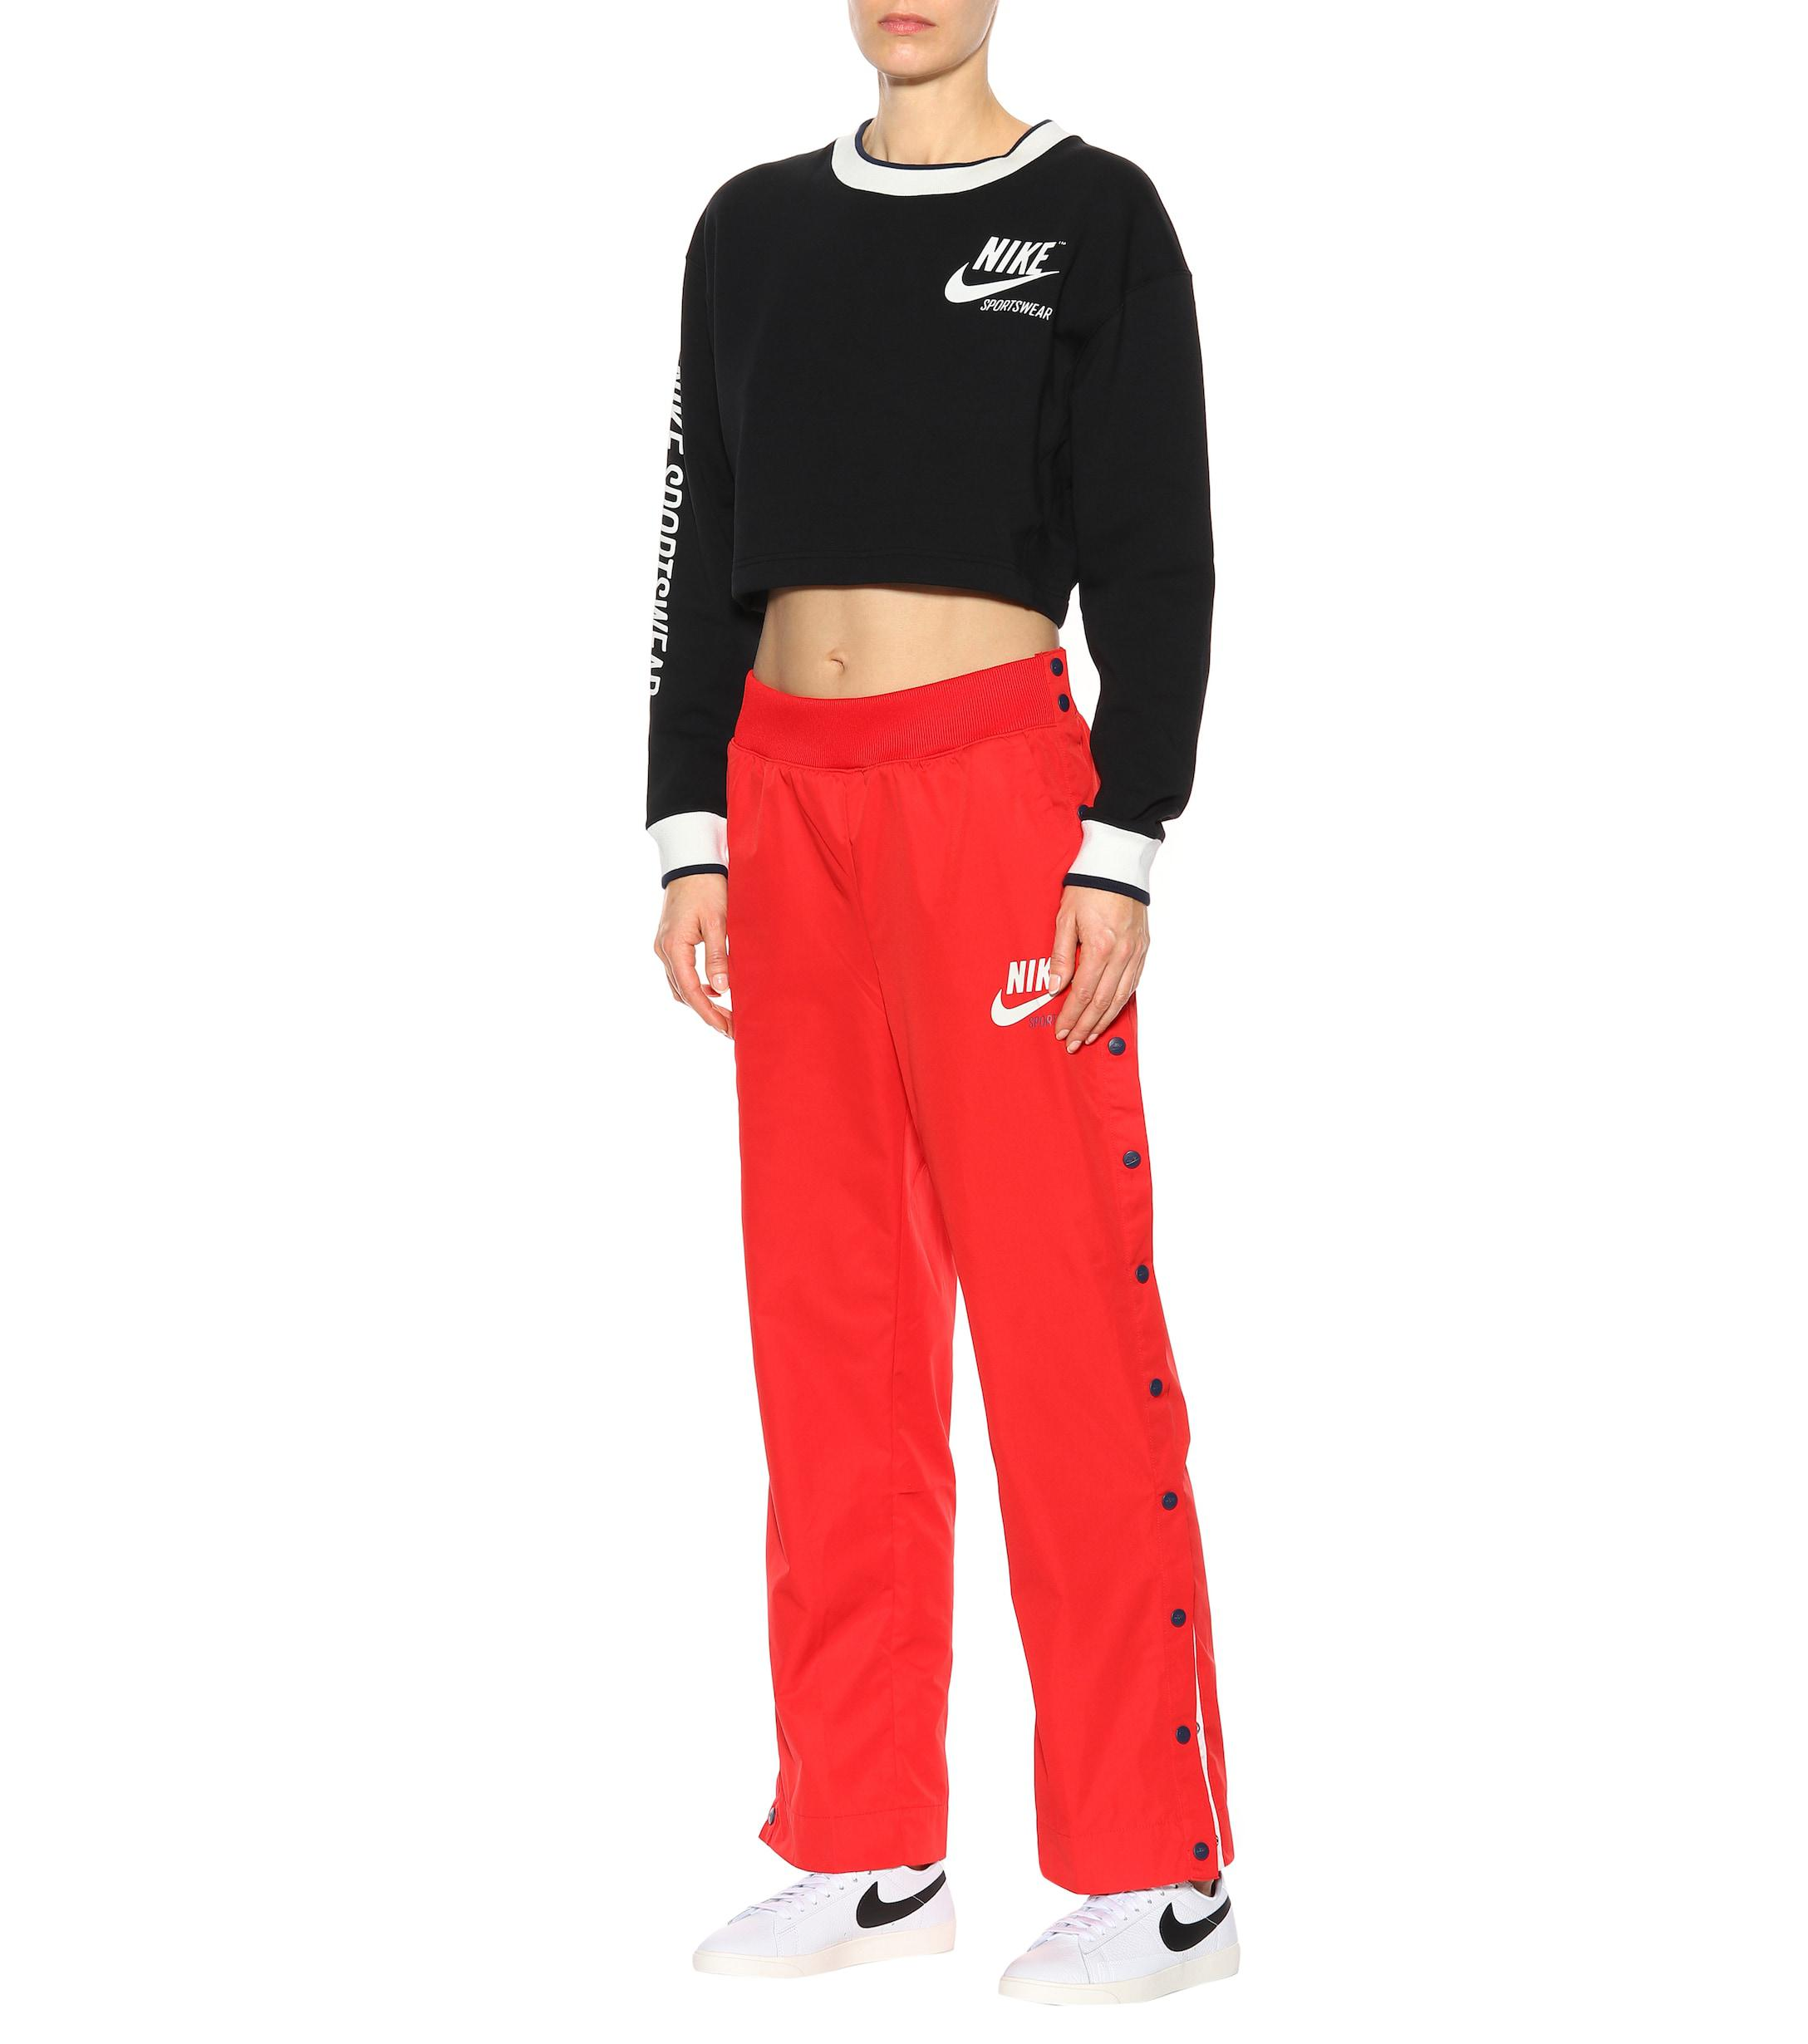 meet b1ff8 9e7dd Coloris Nike Pantalon Survêtement De En Snap Rouge Lyst xgqapw